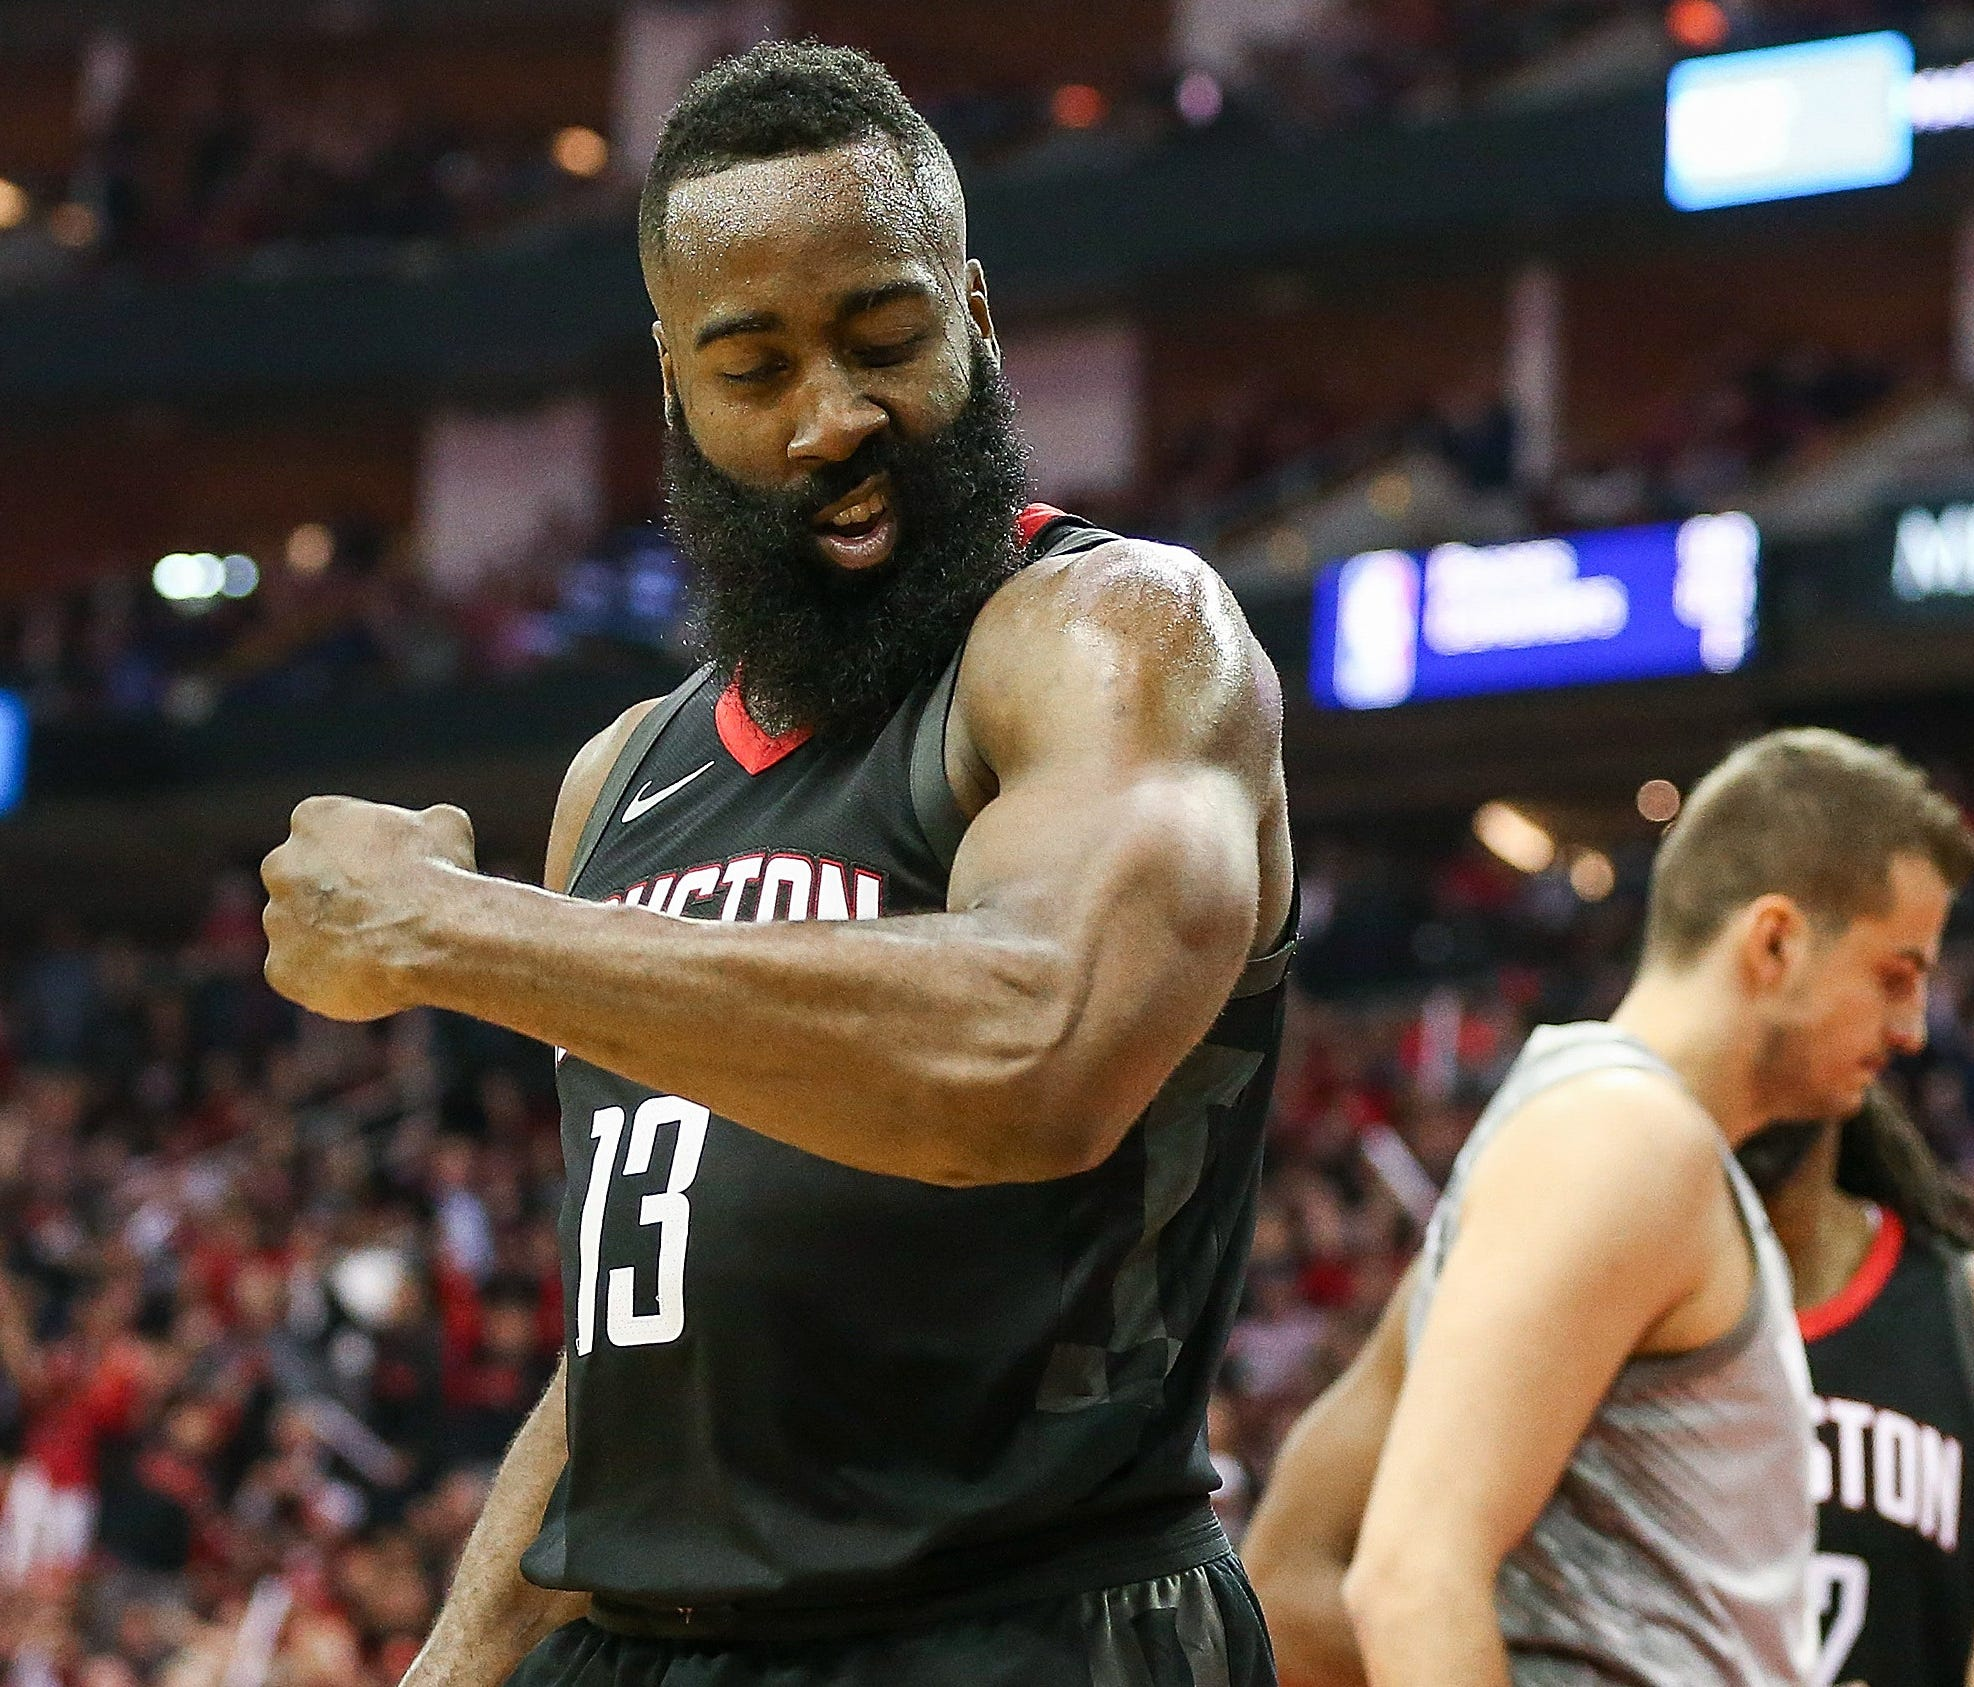 Houston Rockets guard James Harden reacts after scoring as Minnesota Timberwolves forward Nemanja Bjelica looks on during the third quarter in Game 1.